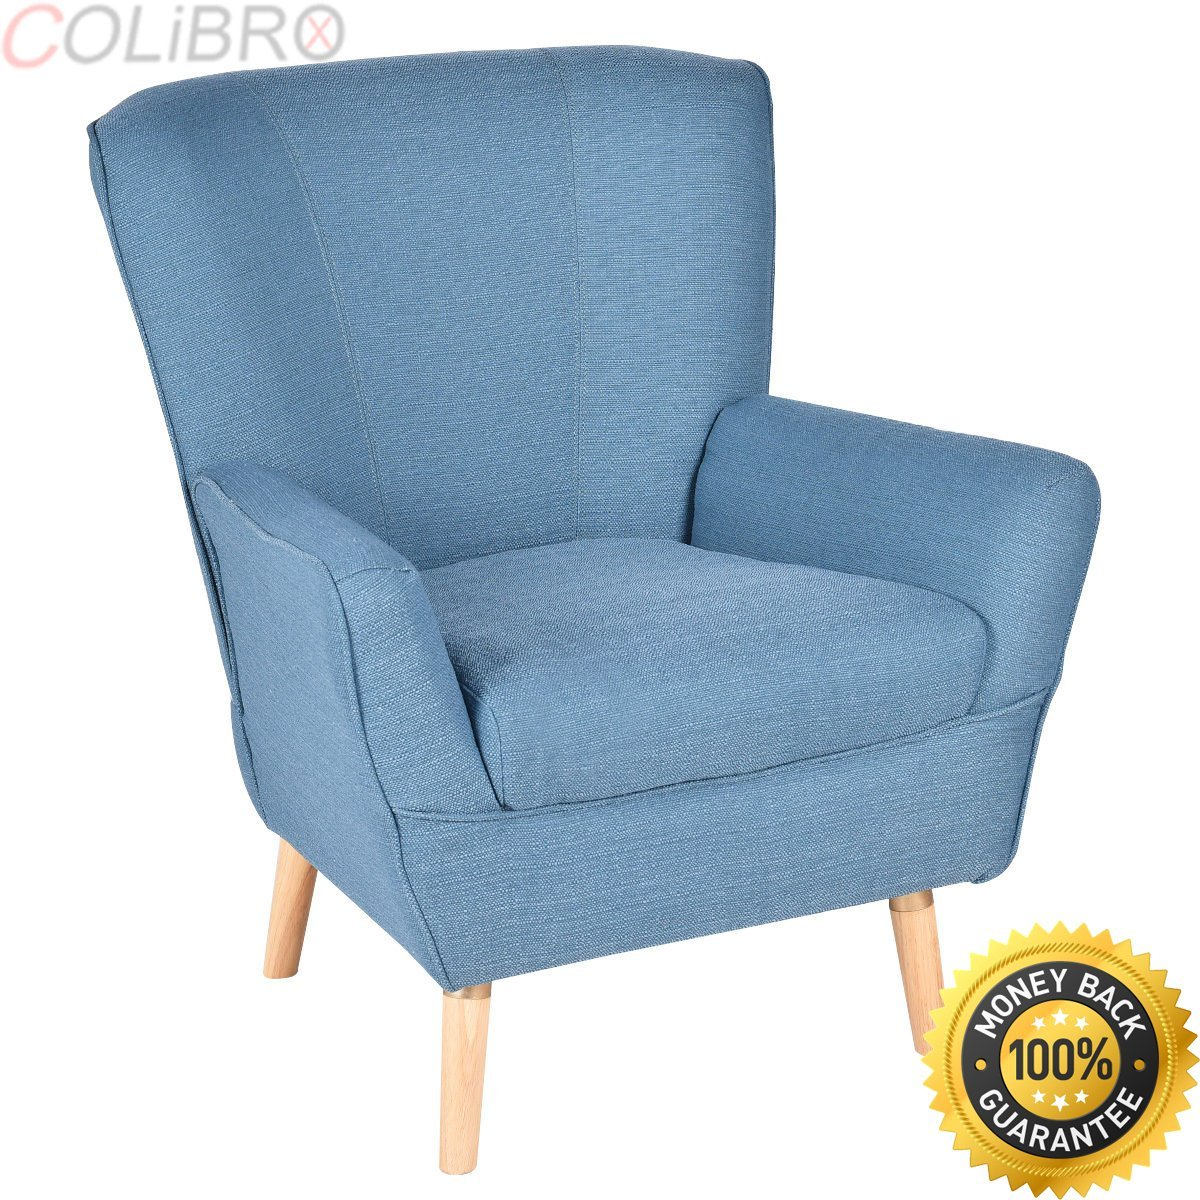 Cheap Red Accent Chairs For Living Room Find Red Accent Chairs For Living Room Deals On Line At Alibaba Com